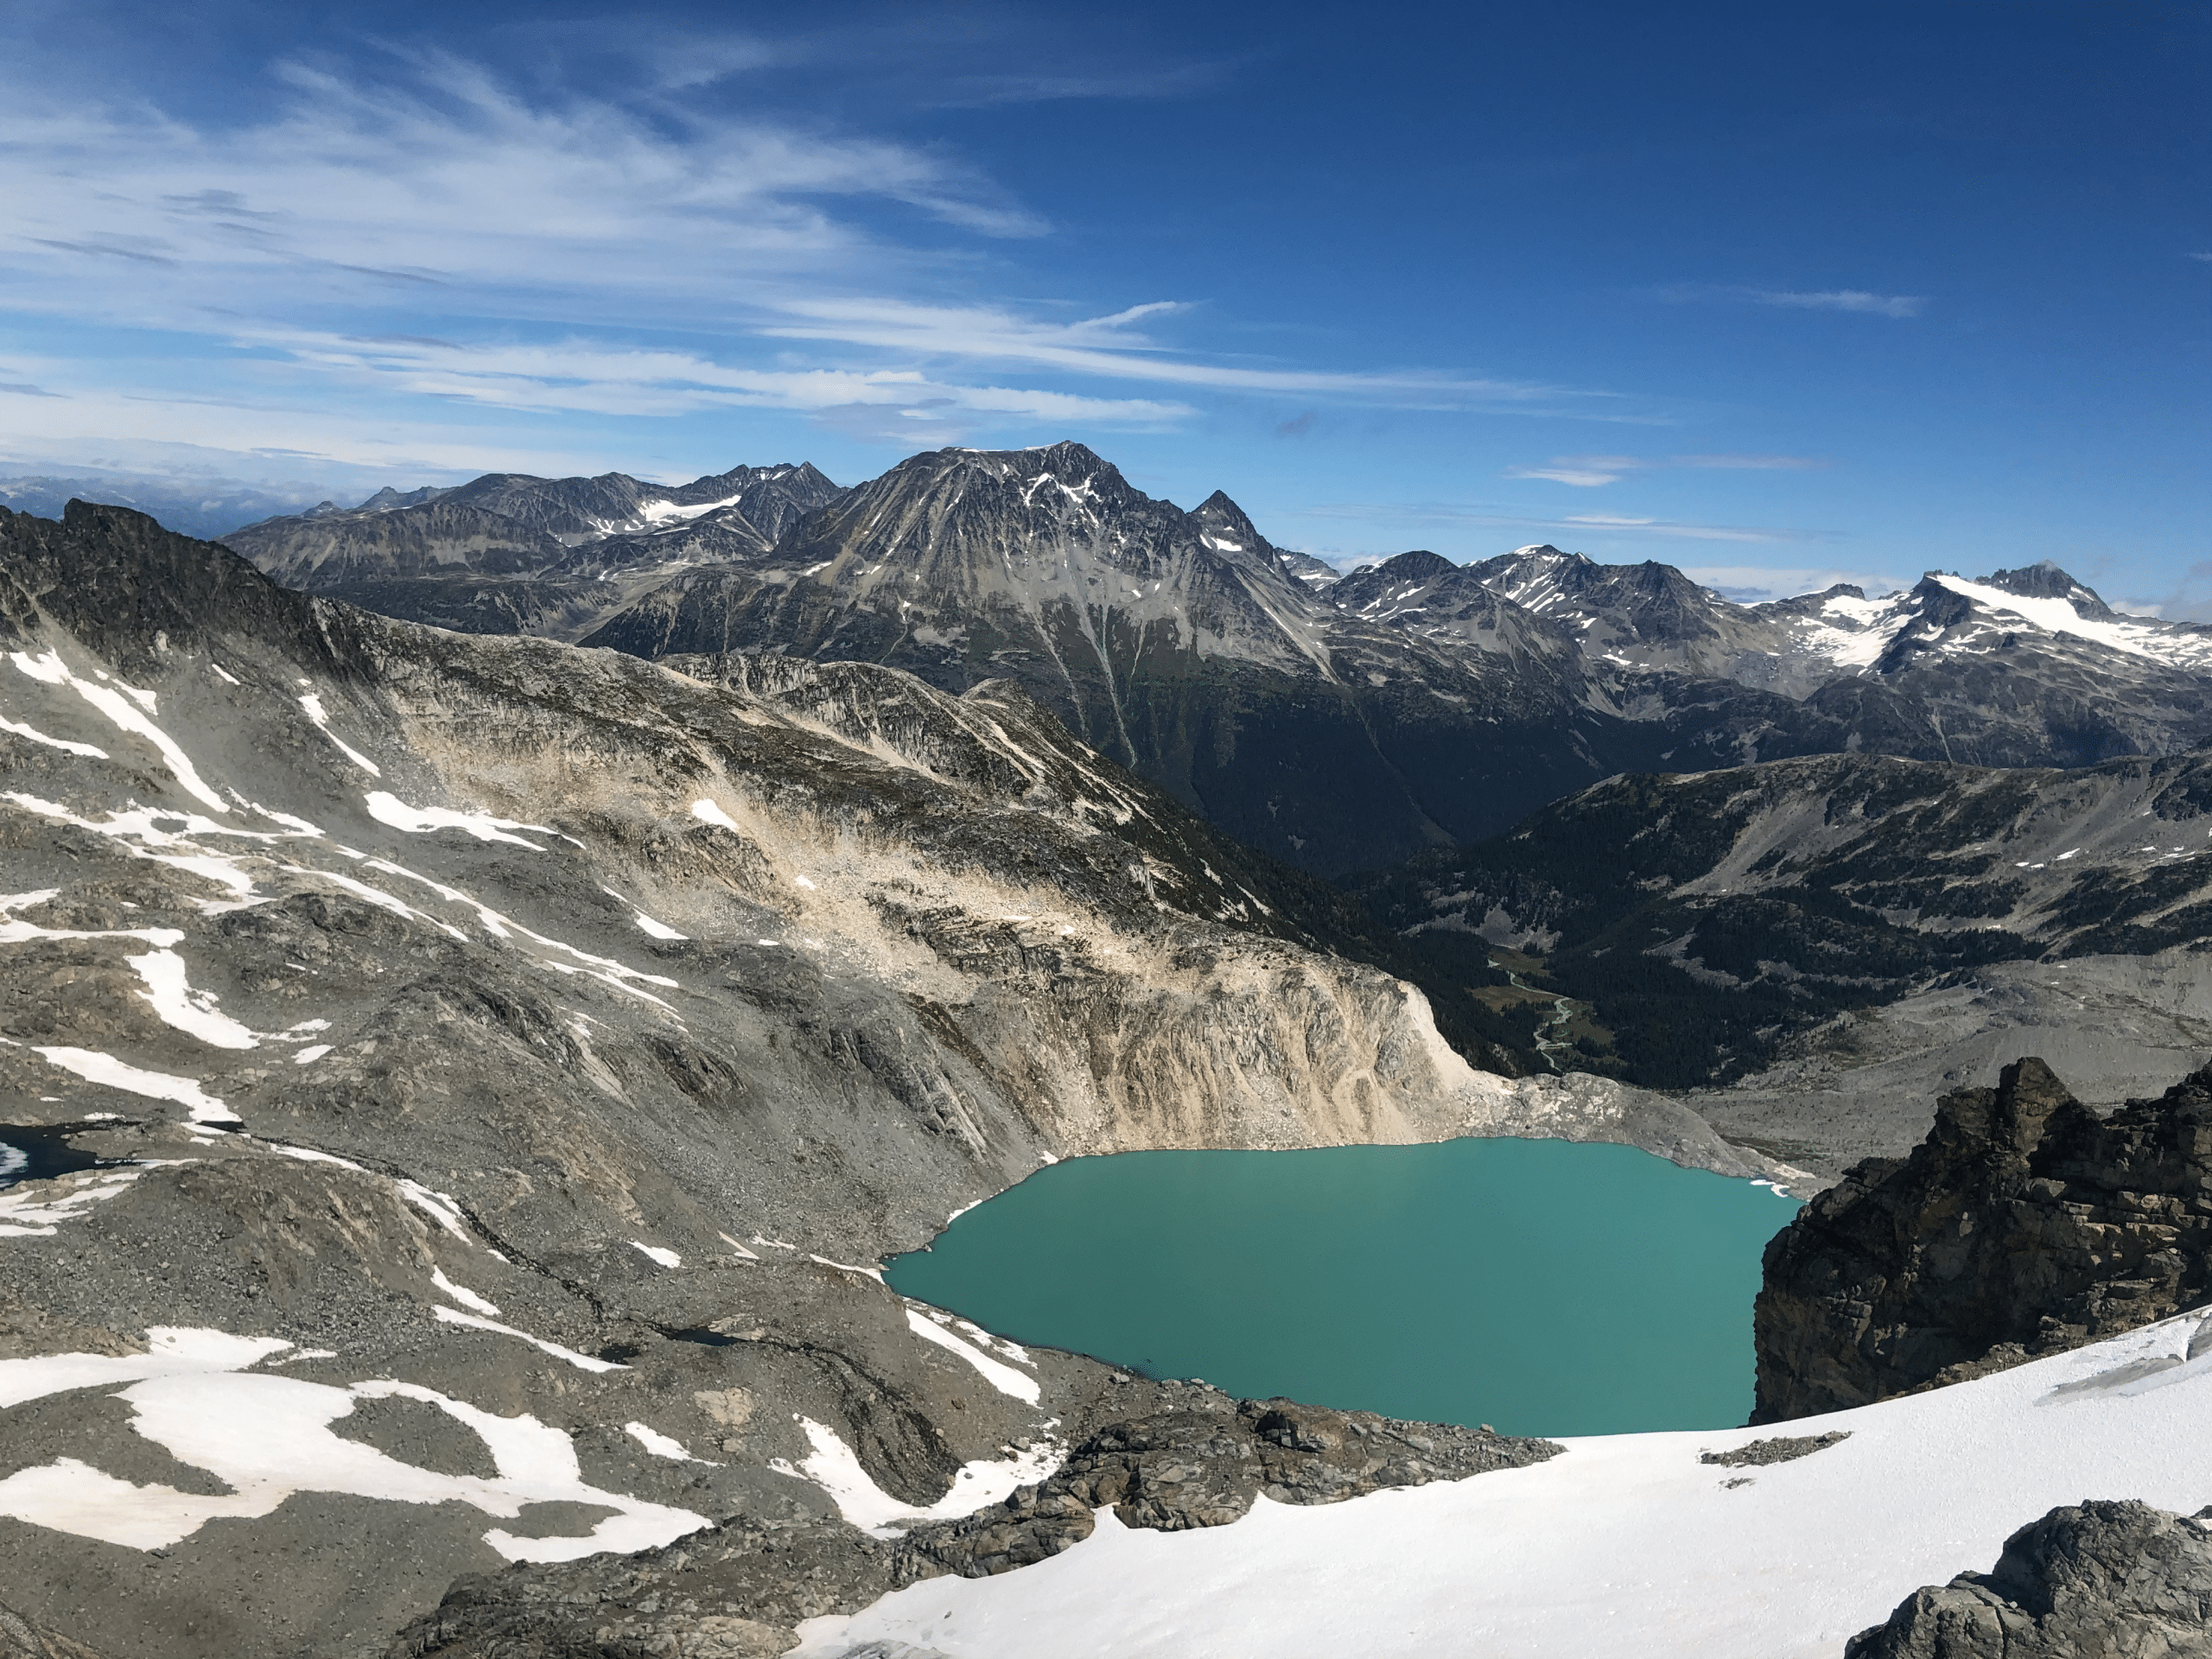 Blackcomb peak surrounded by lakes and mountains. Why worry about U.S. restriction extensions